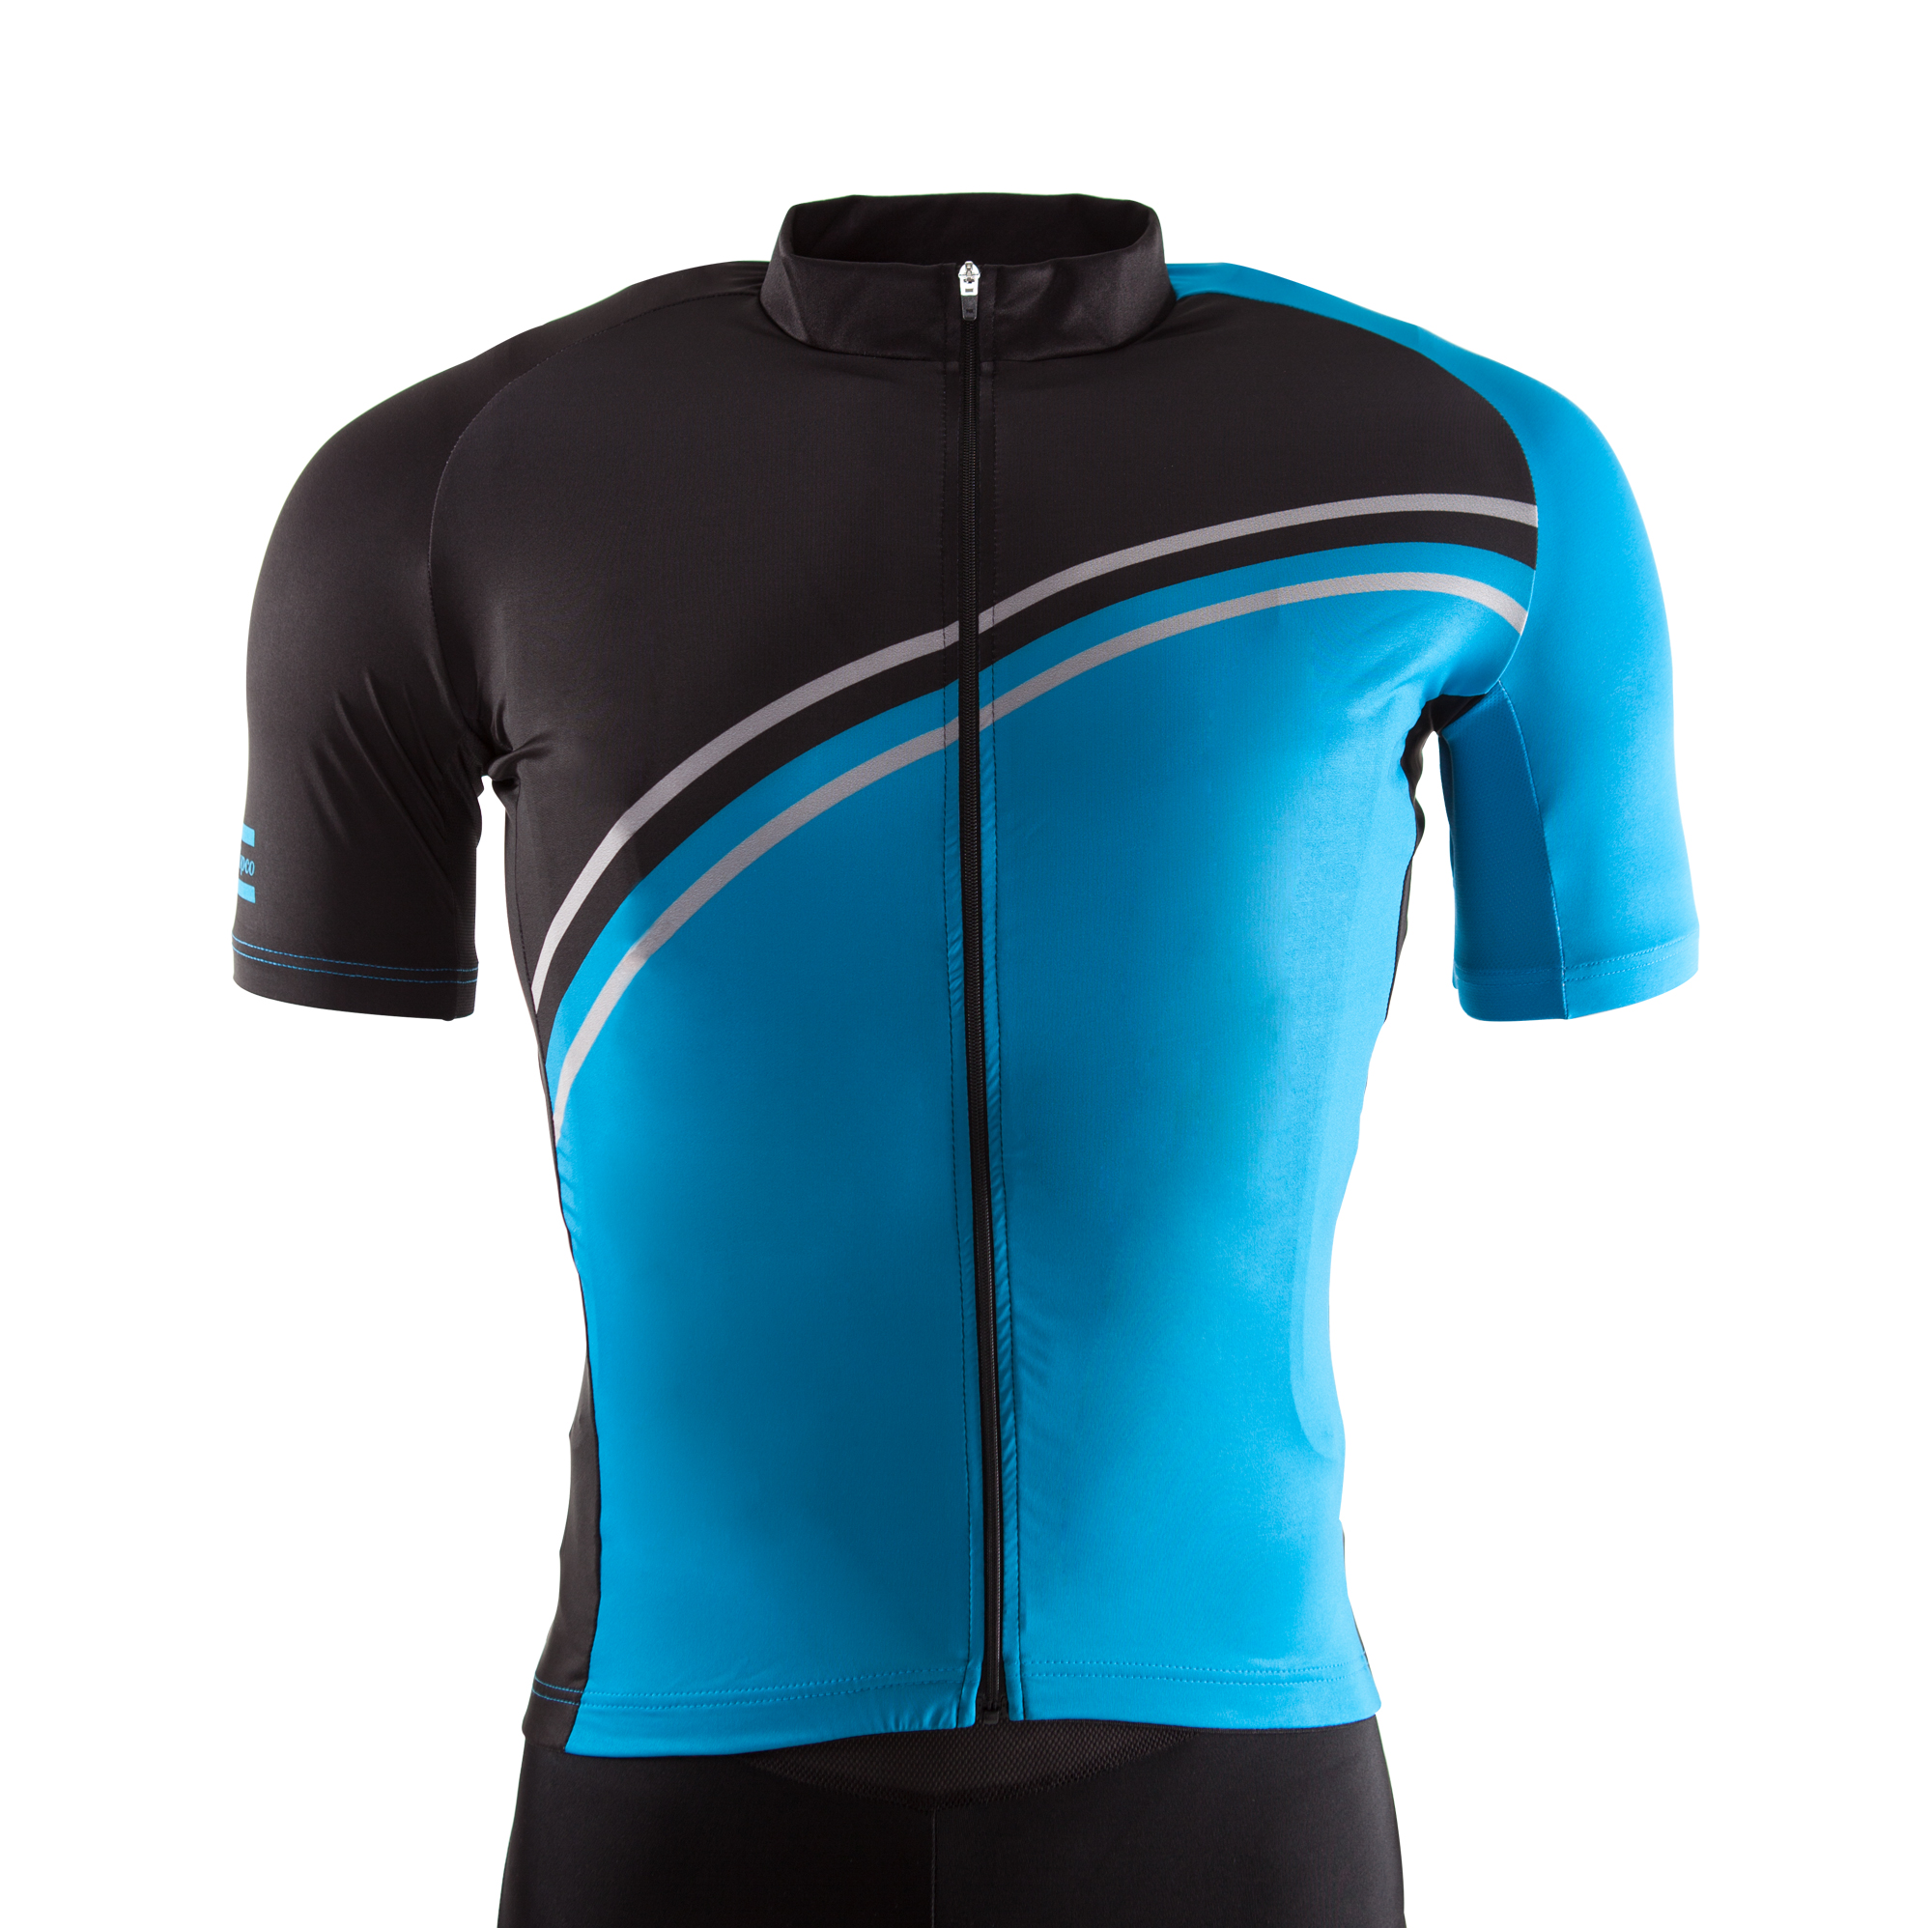 Bike jersey with raglan sleeves,side panels, tapered cut, 3 open back pockets, 1 zippered side pocket with reflecting piping. Fortified collar for improved wearing comfort. Silicone elastic at waist.